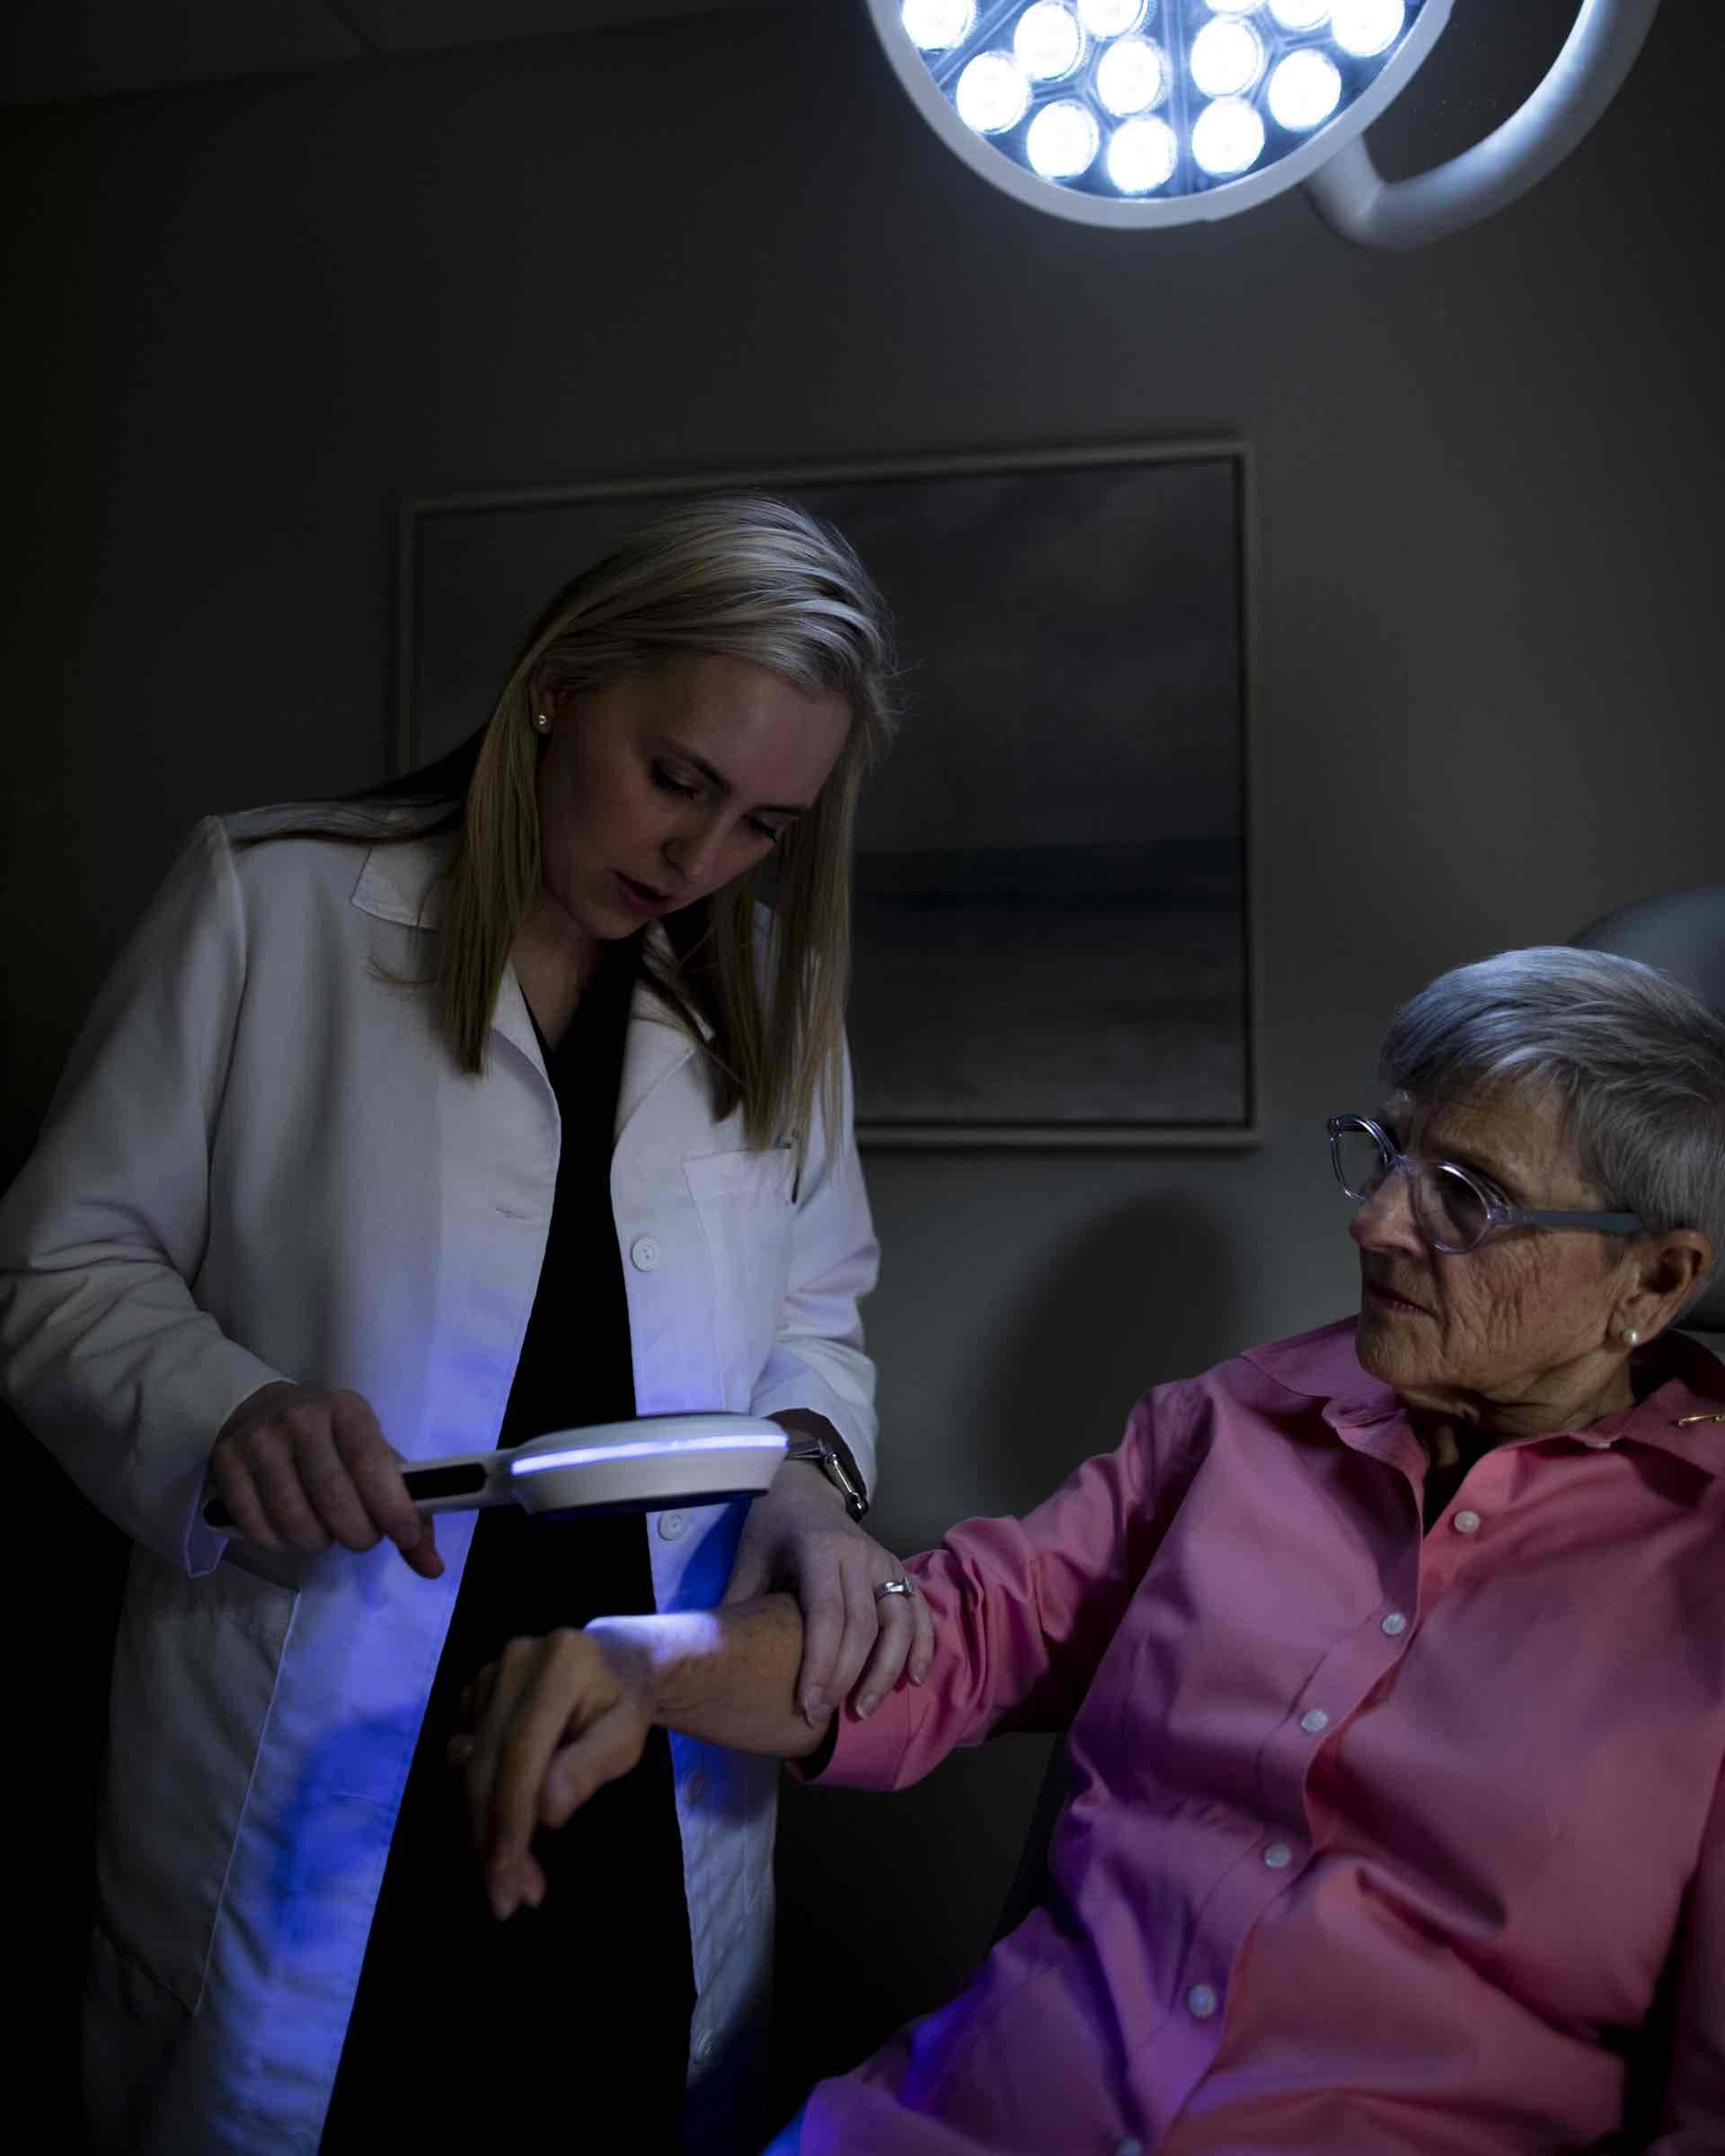 A doctor is holding an elderly woman's arm beneath a ray of light in order to find the problem area.